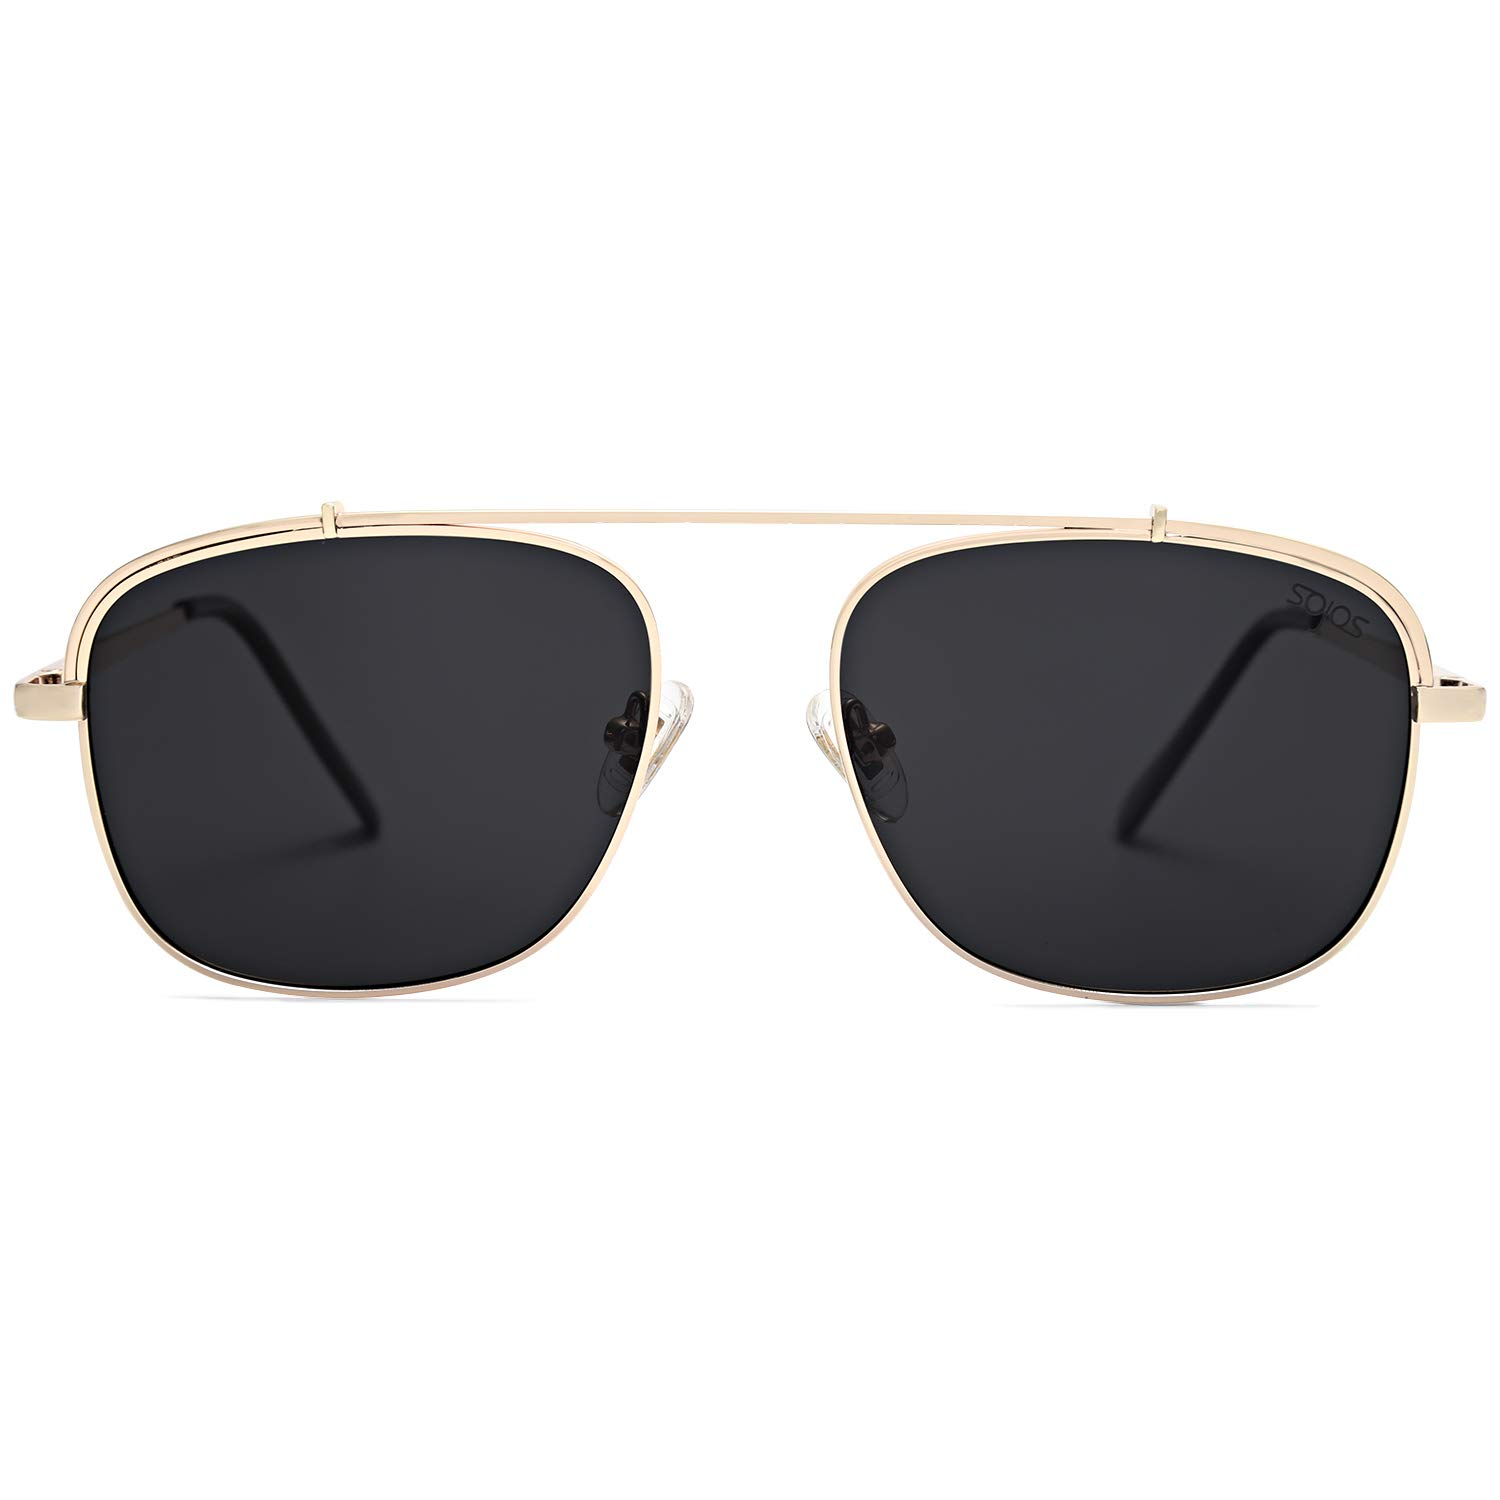 SOJOS Polarized Square Aviator Sunglasses with Spring Hinge Mirrored Lens SJ1118 with Gold Frame/Grey Polarized Lens by SOJOS